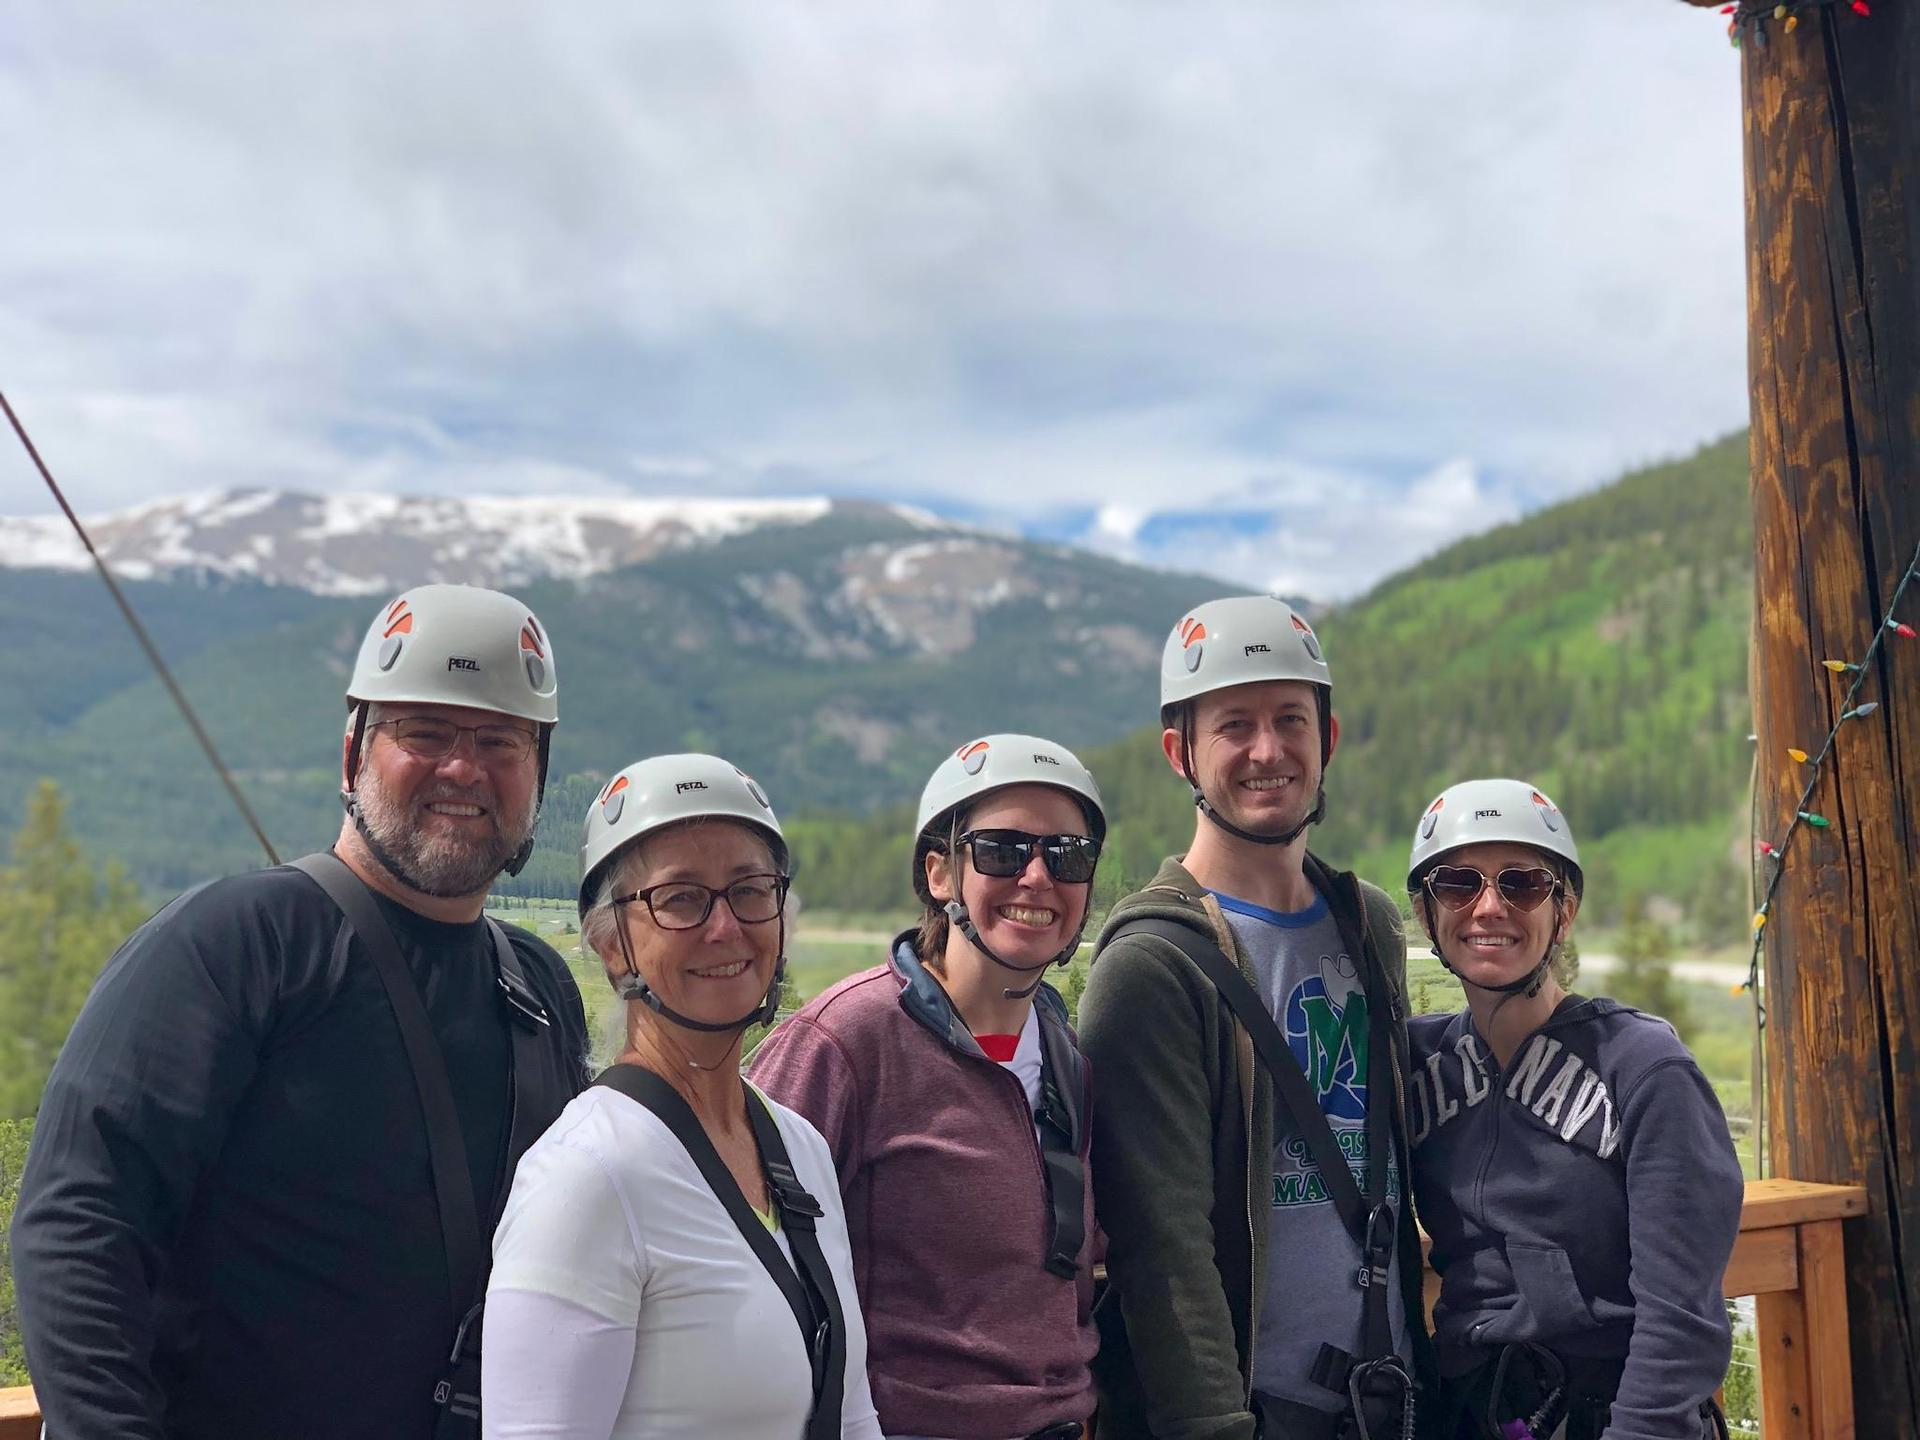 Zip Lining in Colorado with my family